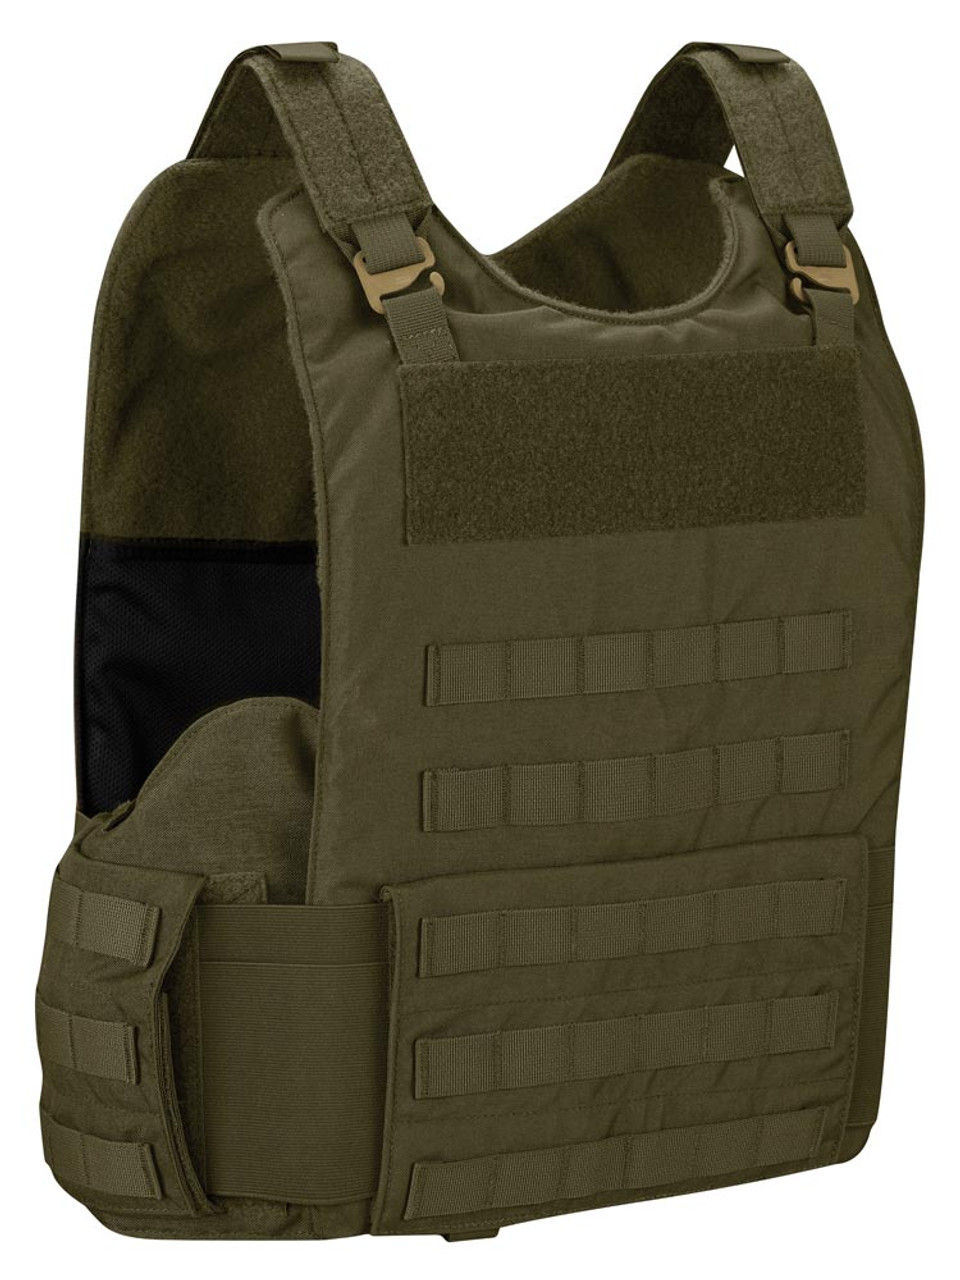 Propper® 4PV-TAC Men's Four Piece Tactical Exterior Bulletproof Soft Body Armor Vests - Choose Vest only or Vest and Plates - NIJ Certified Level 2 or Level 3A Threat Inserts - Exterior application with MOLLE attachment points for customization